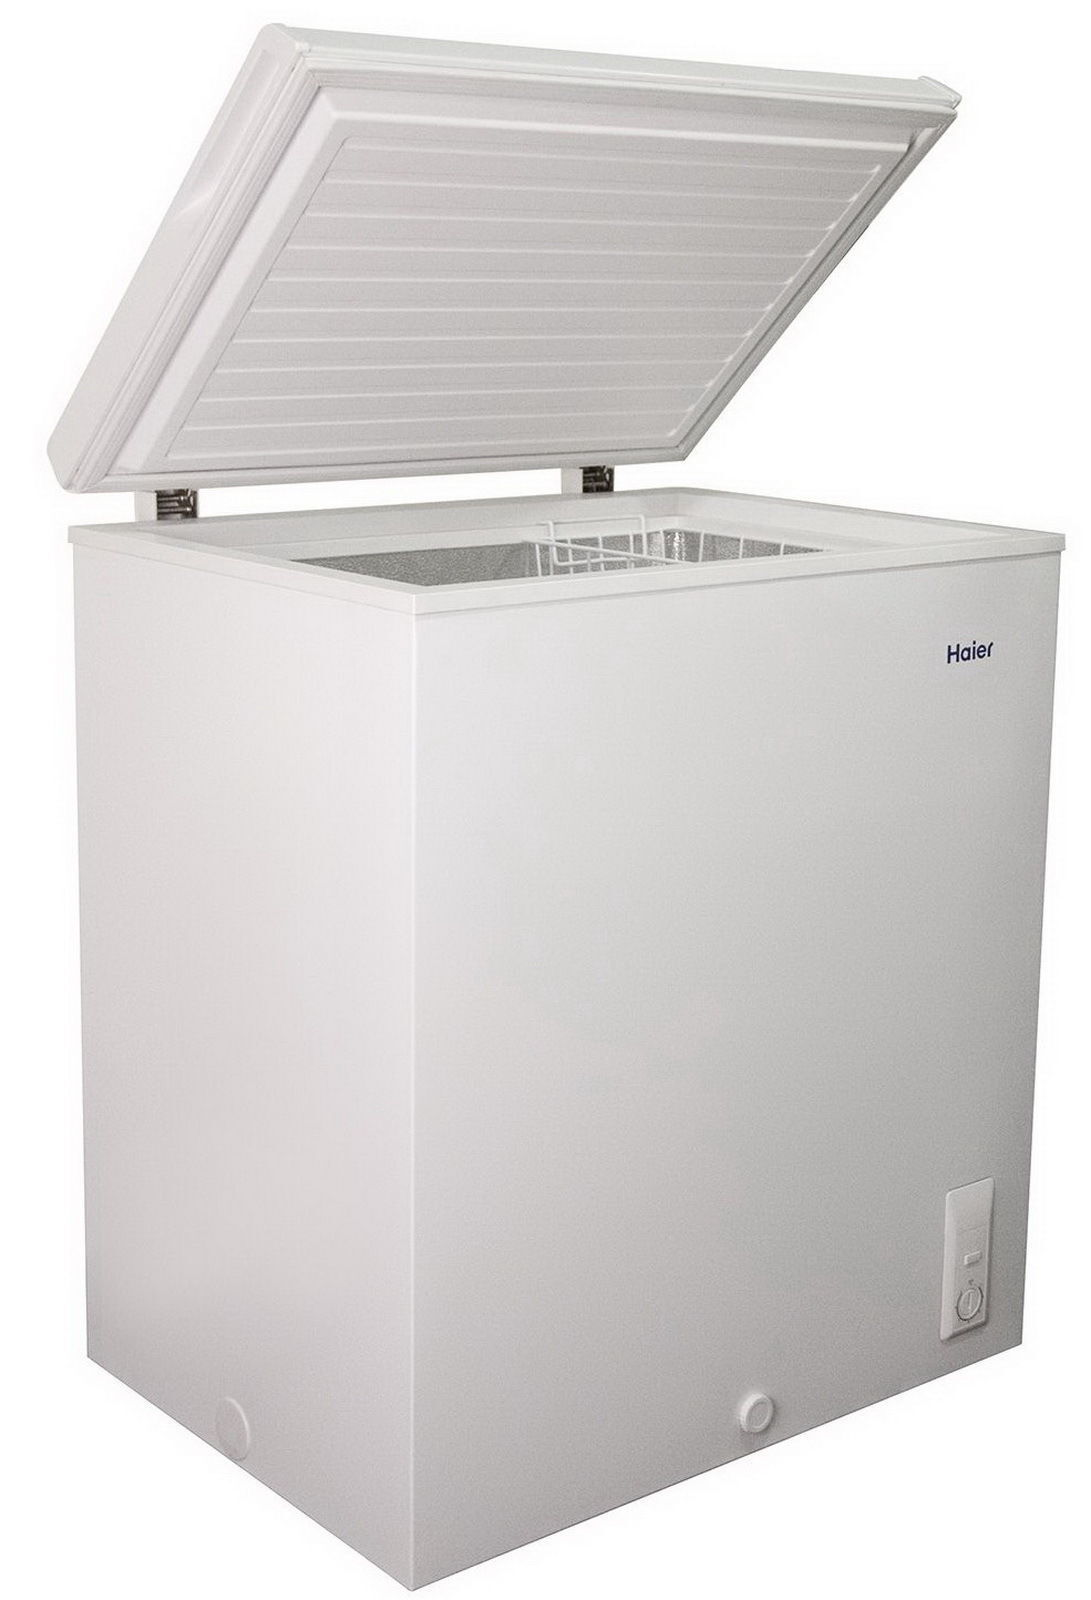 Upright Chest Freezers For Sale Ebay